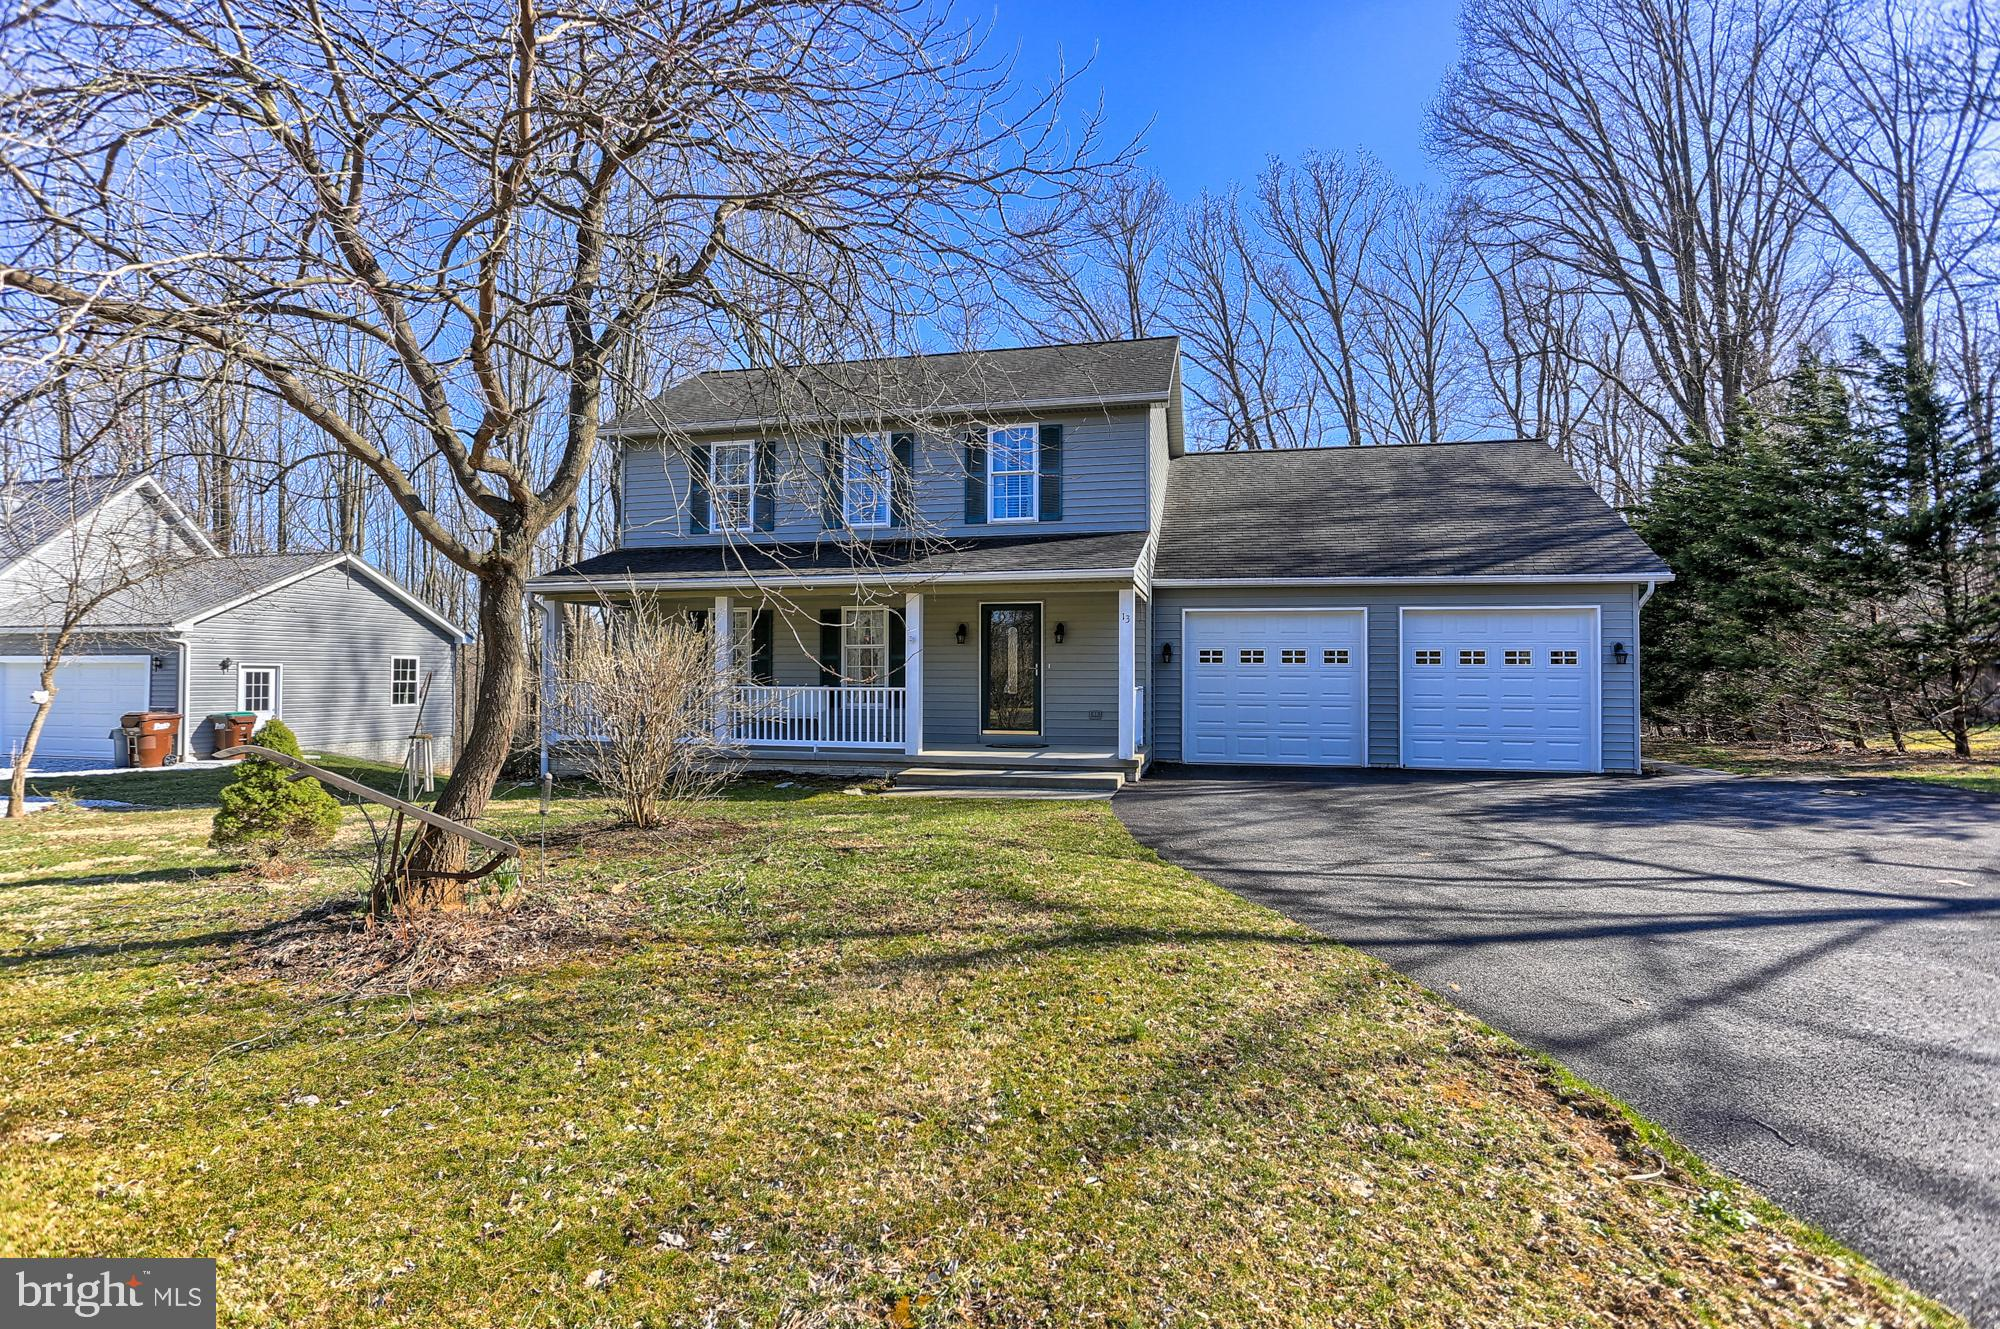 13 DEER TRAIL, FAIRFIELD, PA 17320